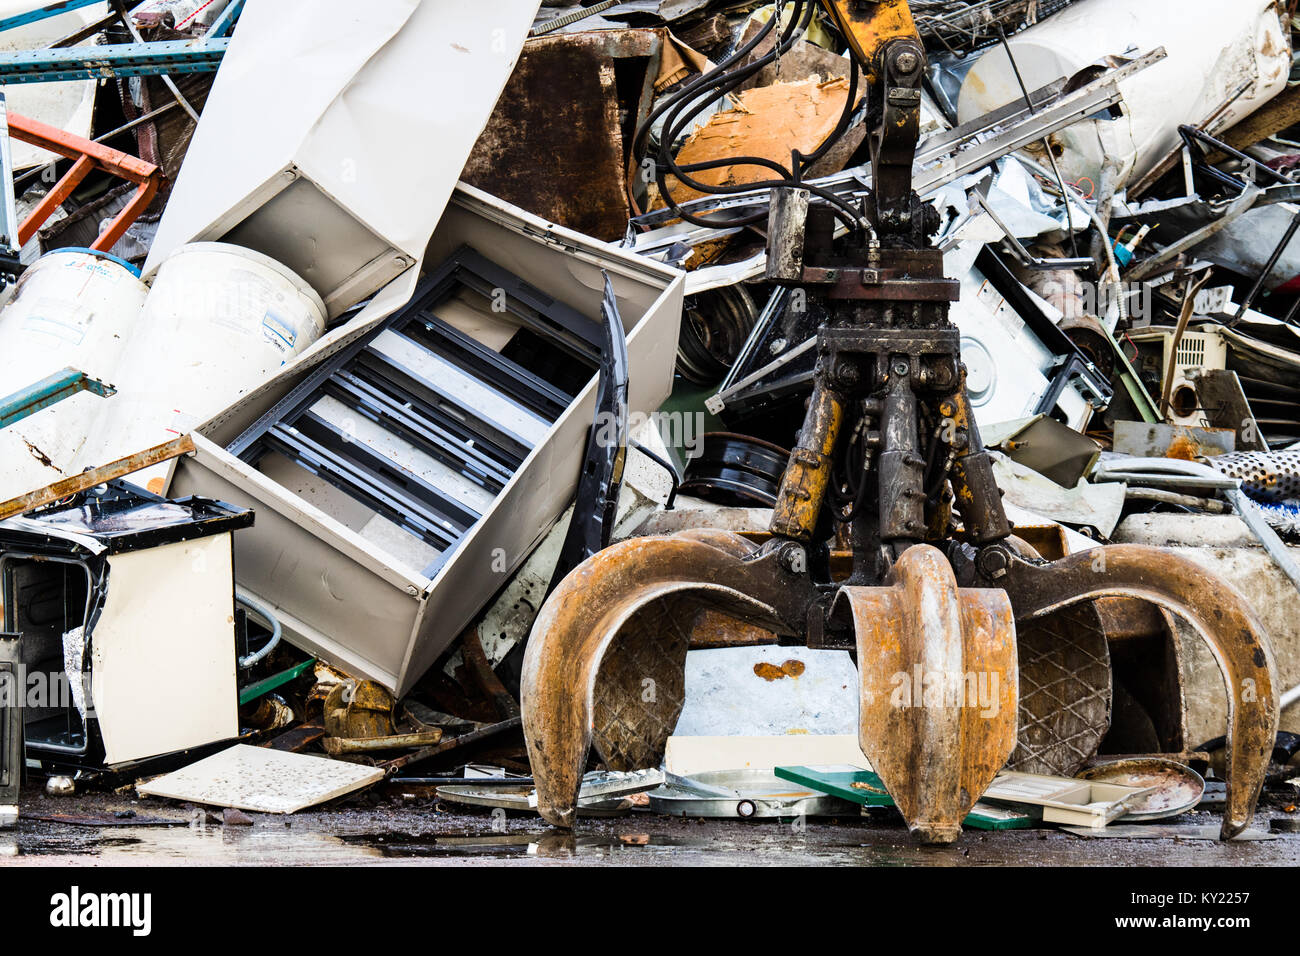 Used Electrical Appliances Stock Photos Amp Used Electrical